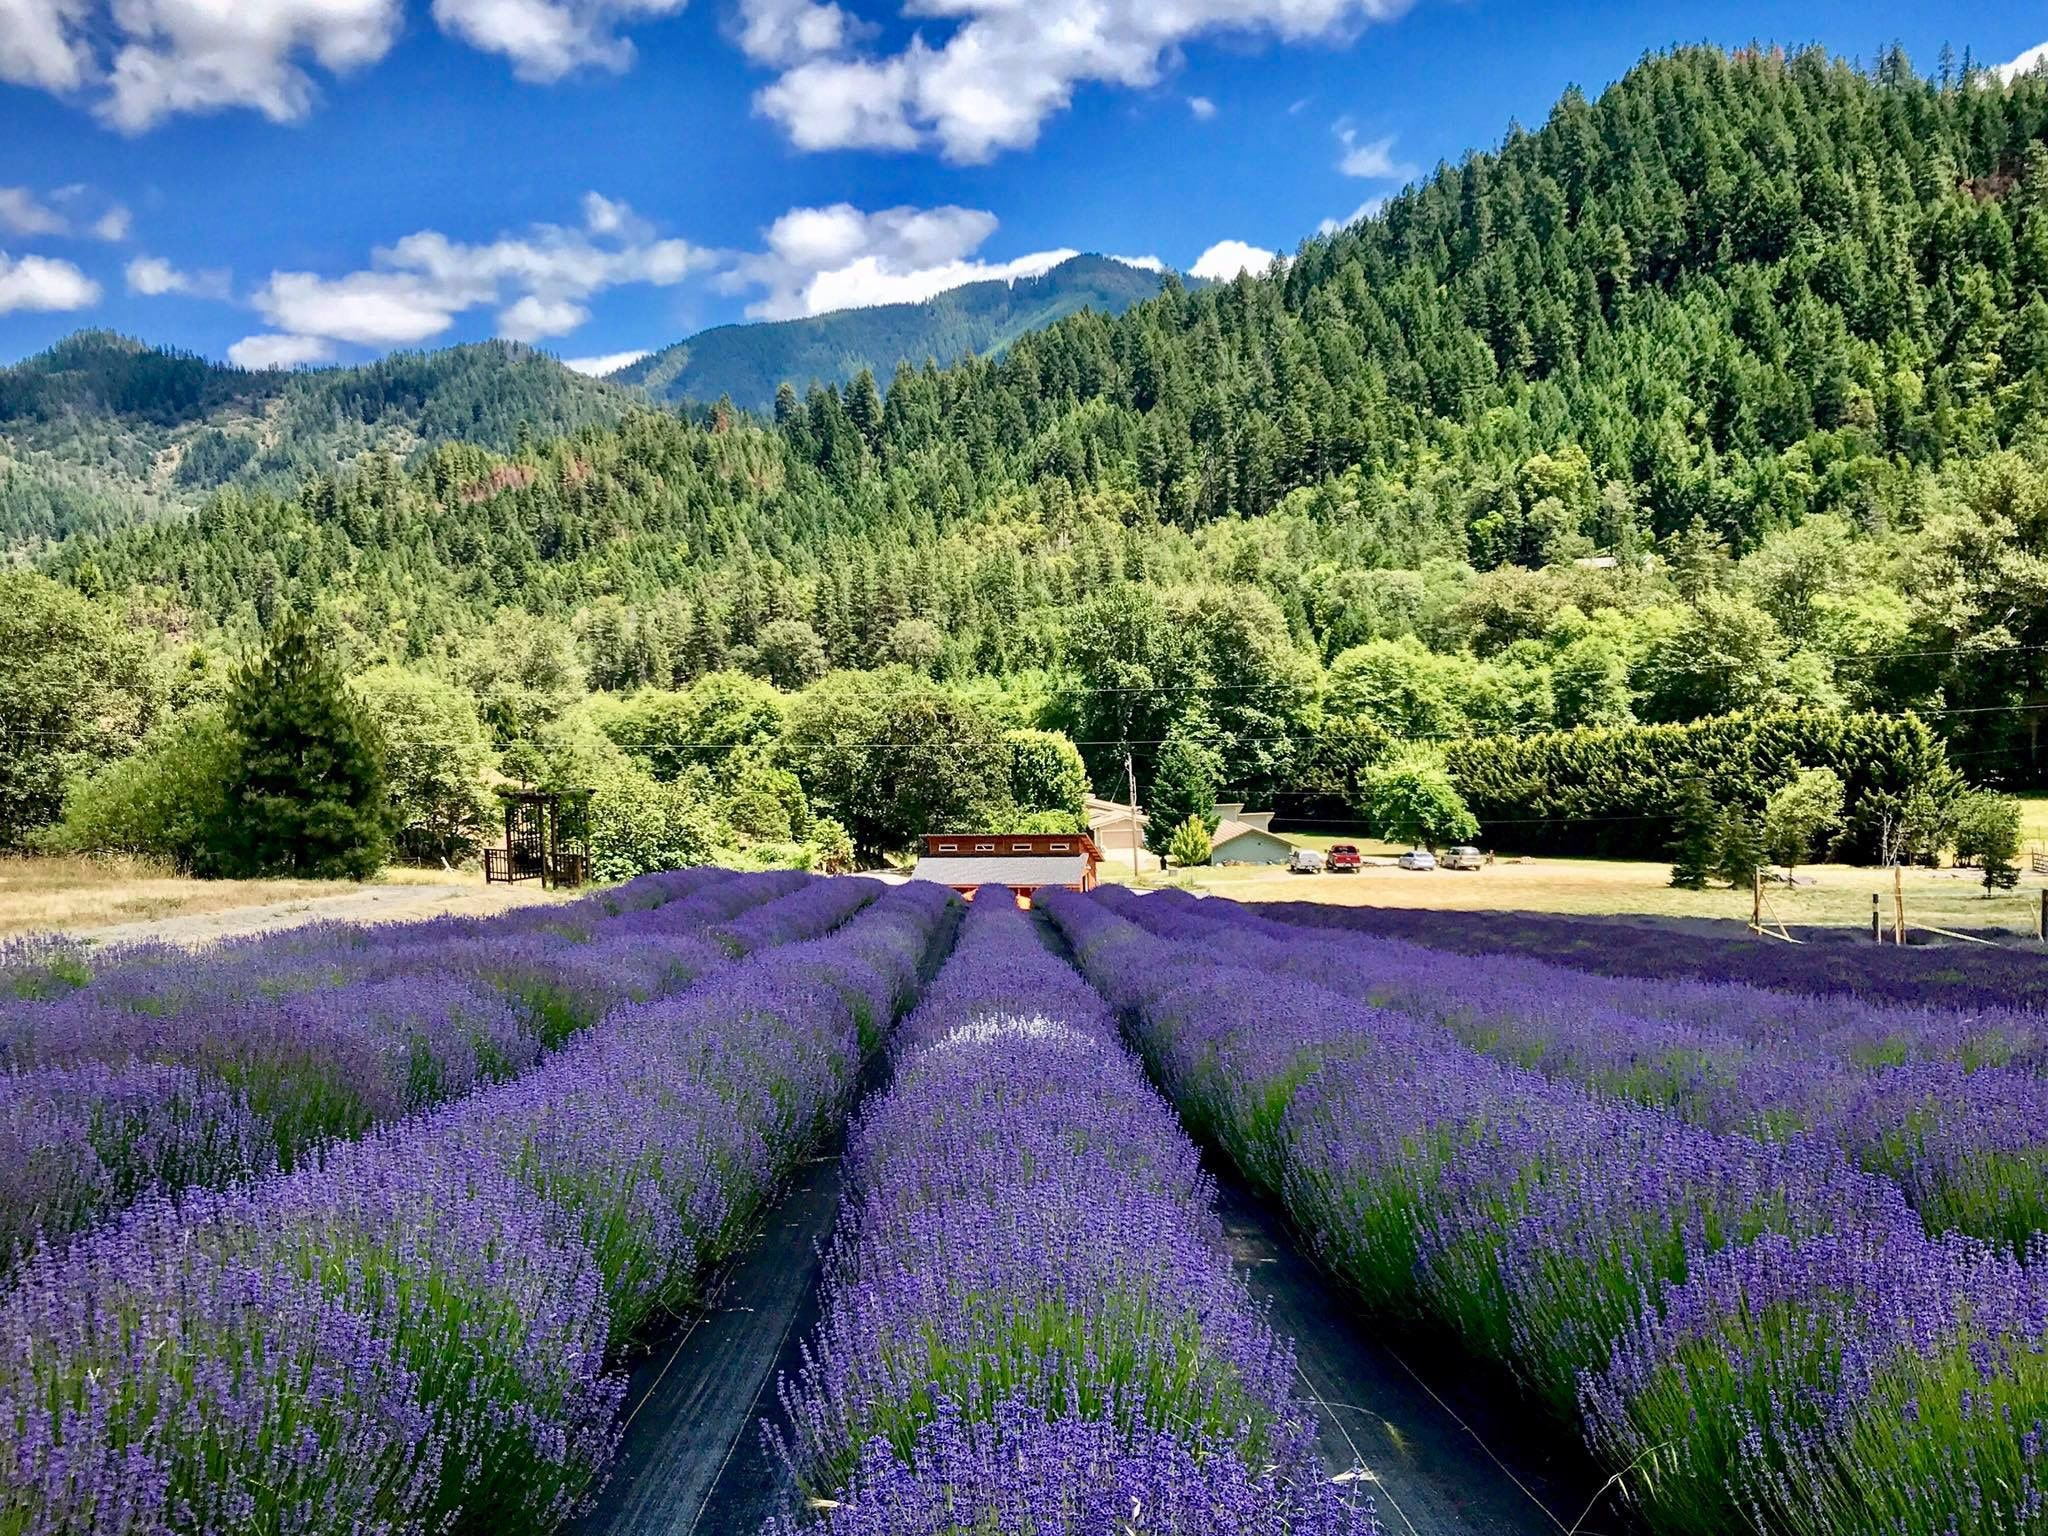 Lavender farm with trees and mountains in background